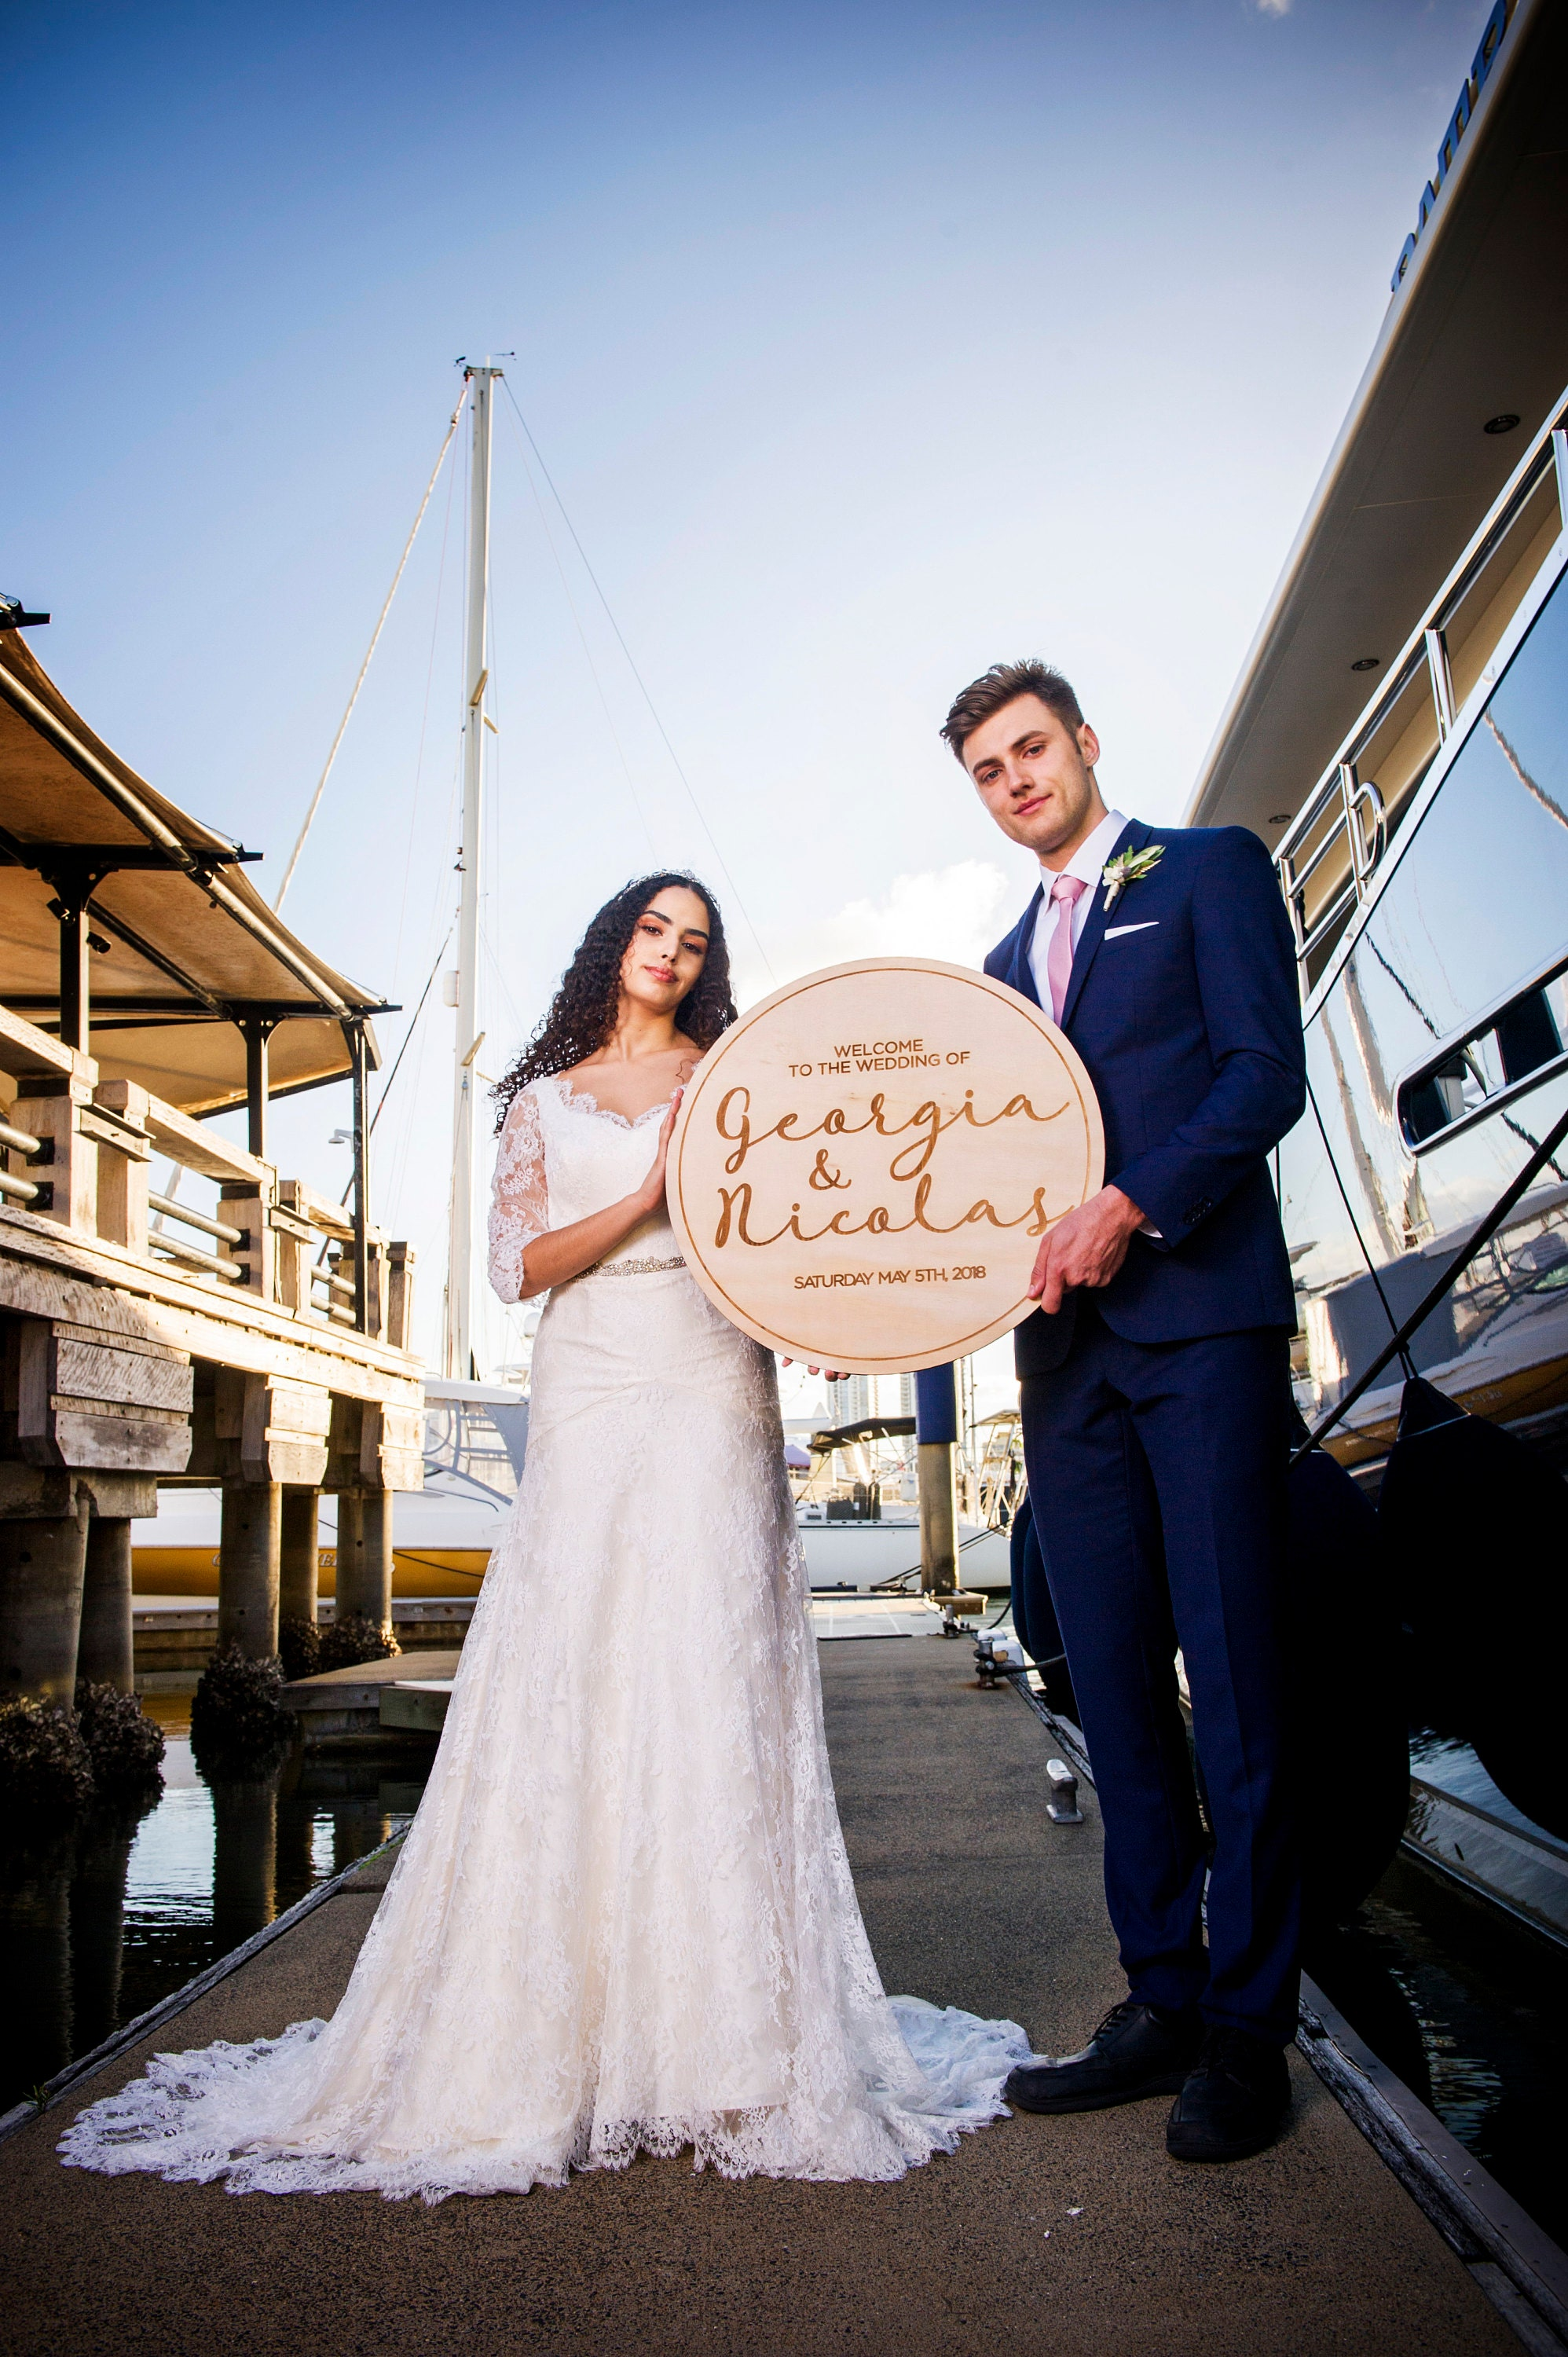 Round Wedding Signs - Wood